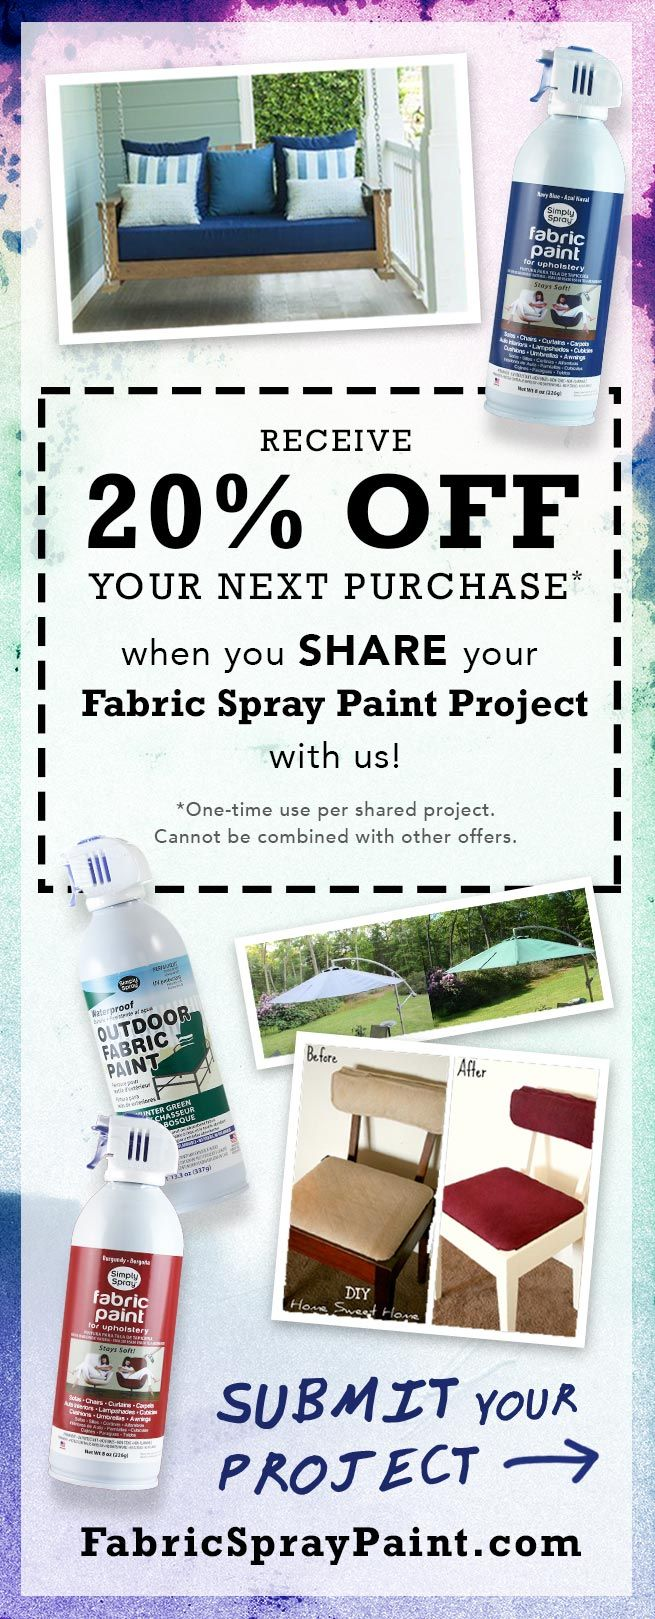 Did You Paint Awesome Furniture Fabric Spray Paint Fabric Spray Paint Fabric Paint Diy Fabric Spray